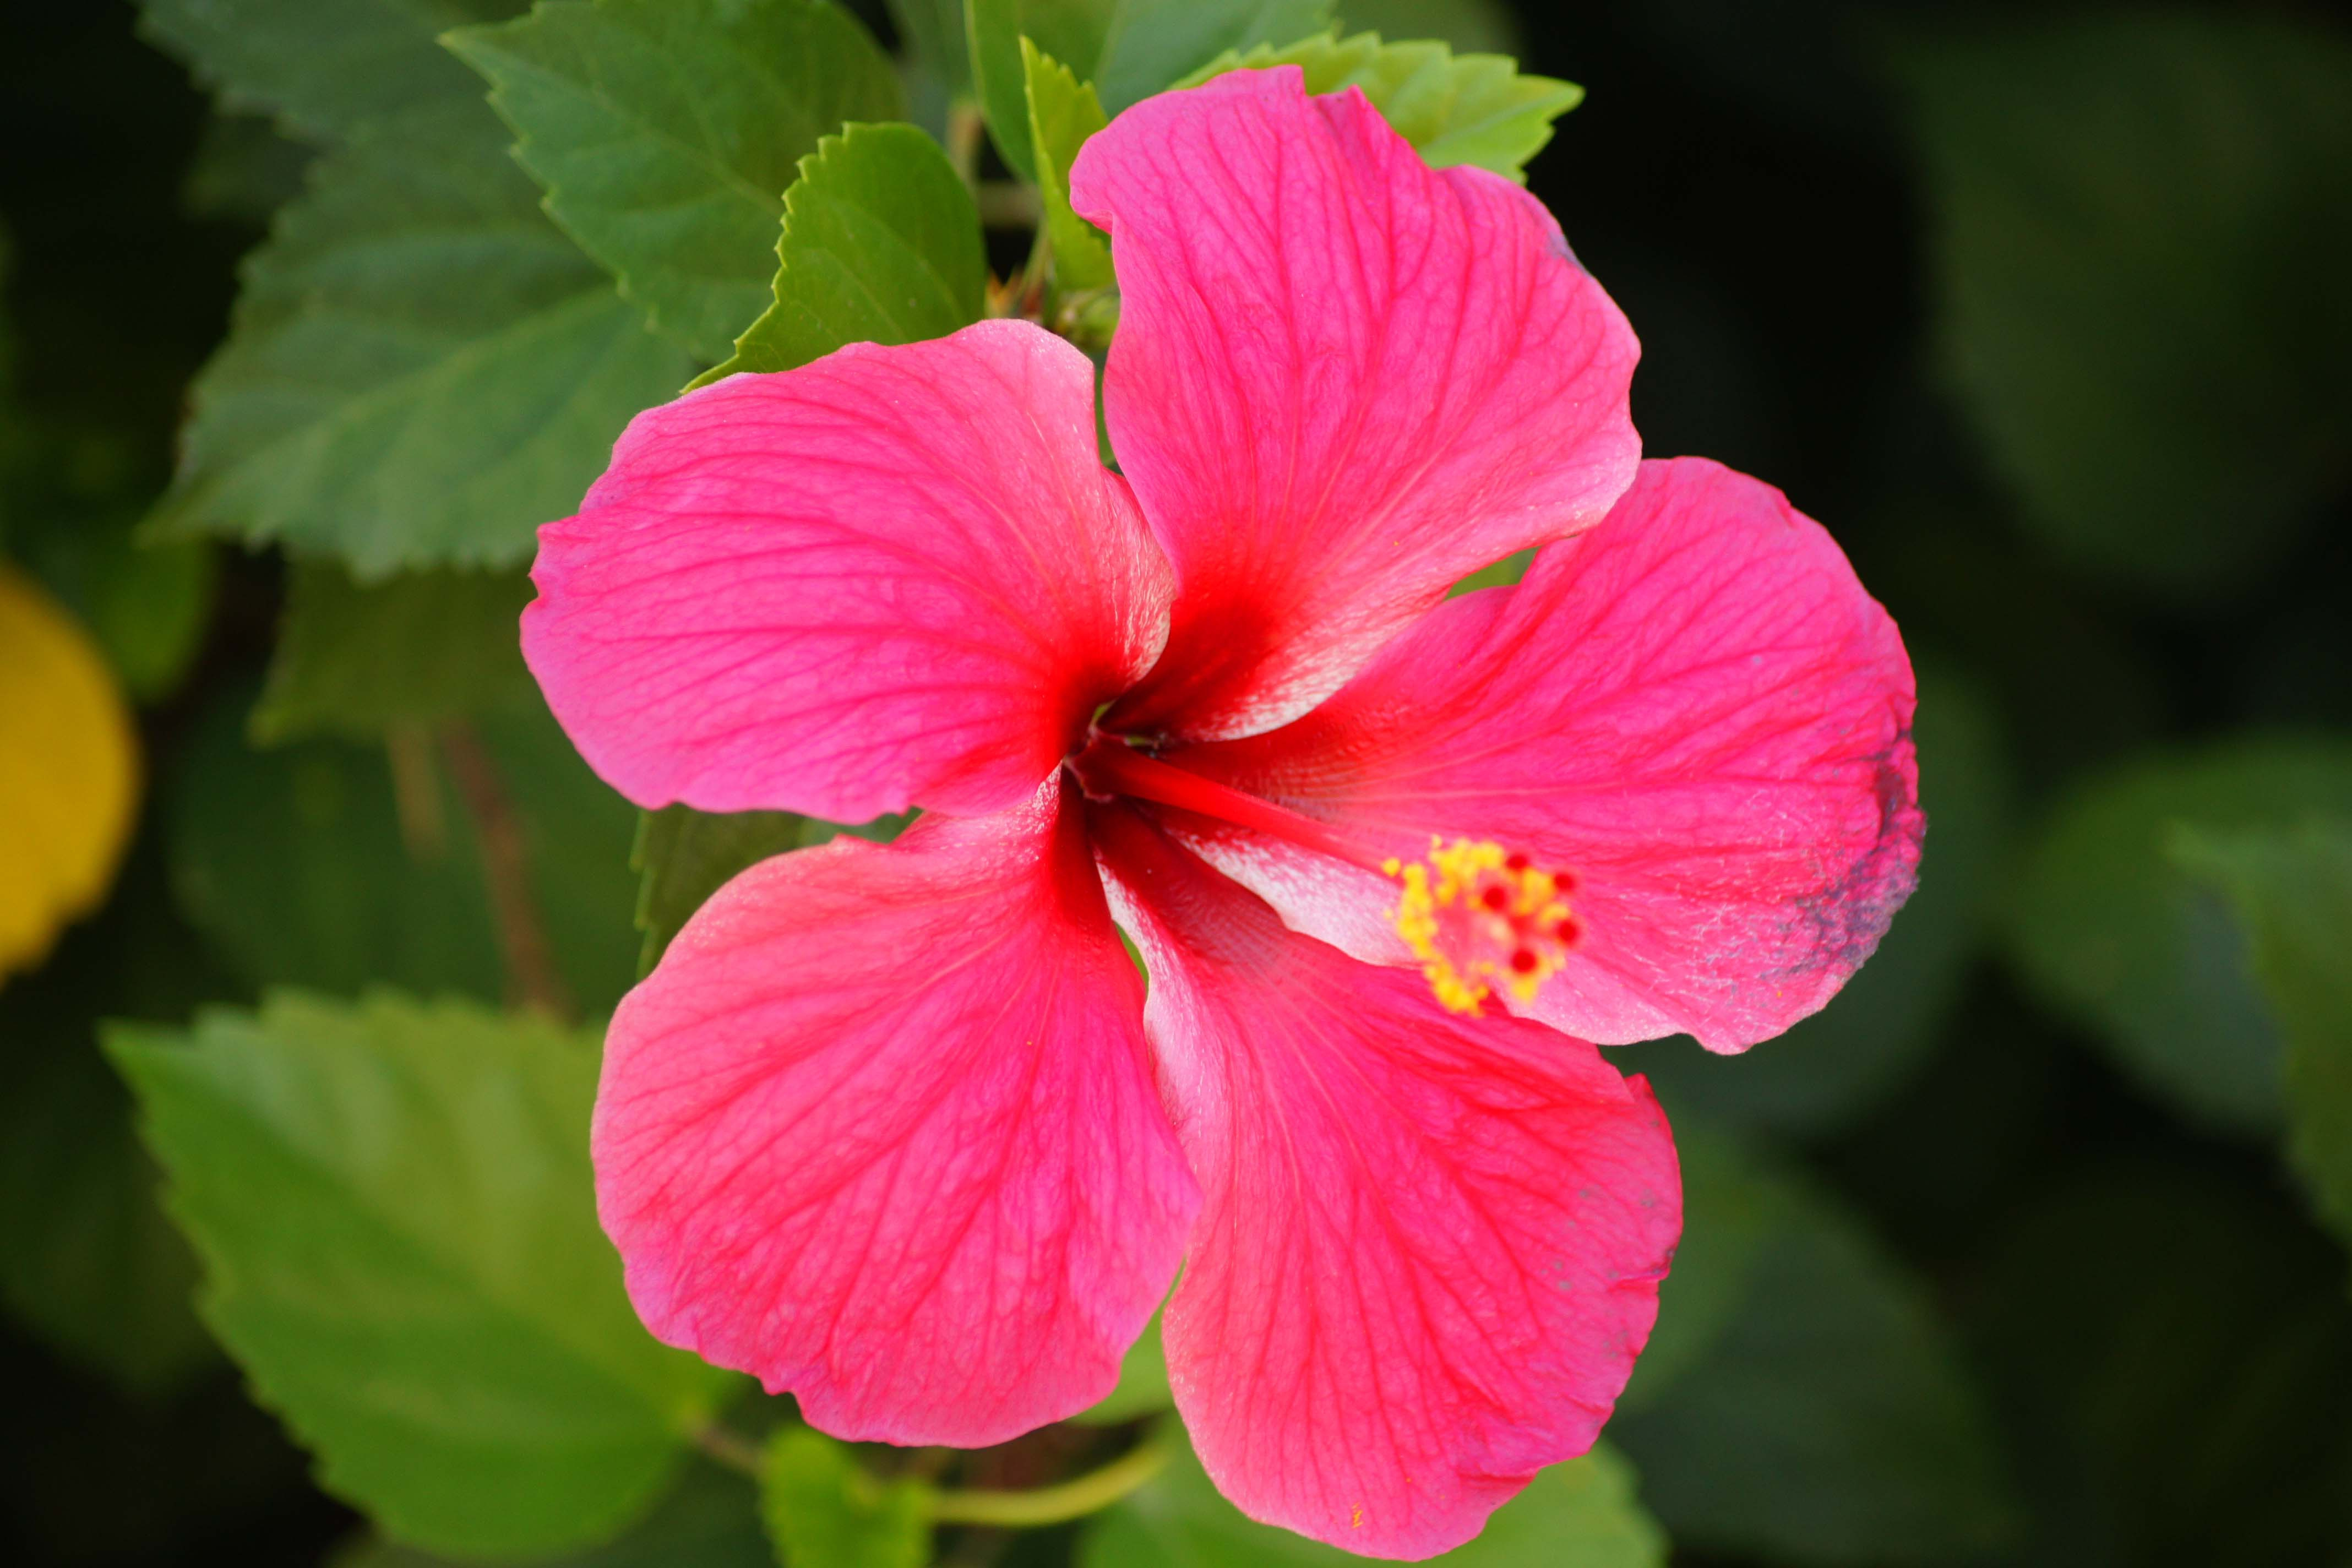 Hibiscus wallpapers hd - Hibiscus images download ...